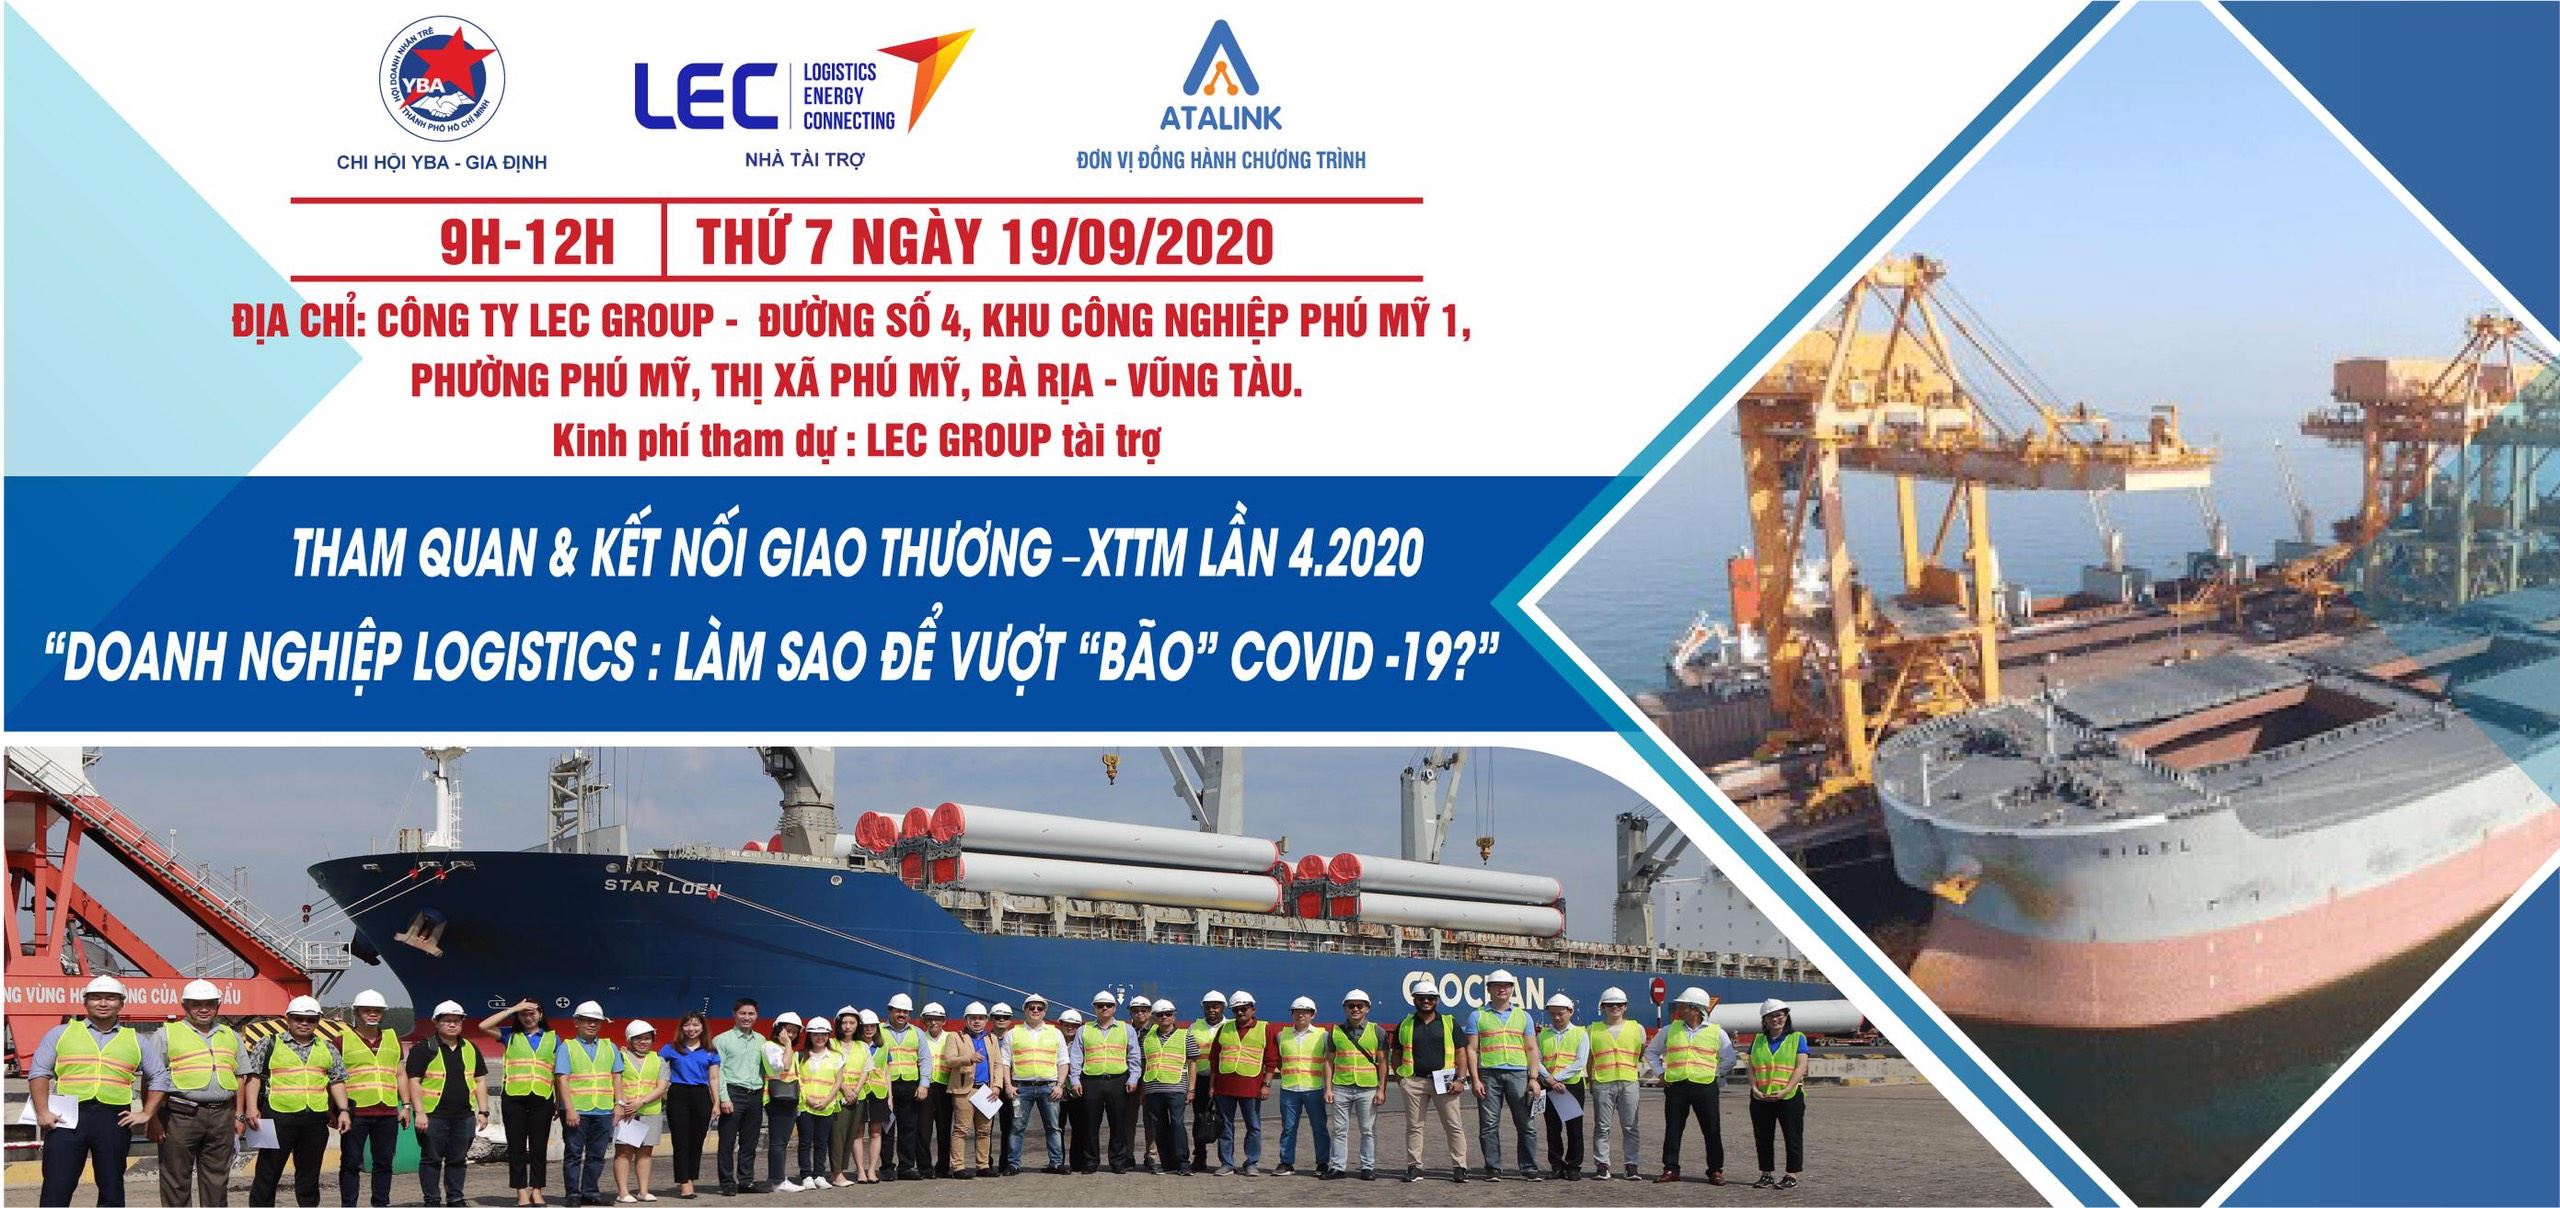 LEC Group welcomed the delegation of YBA Gia Dinh -